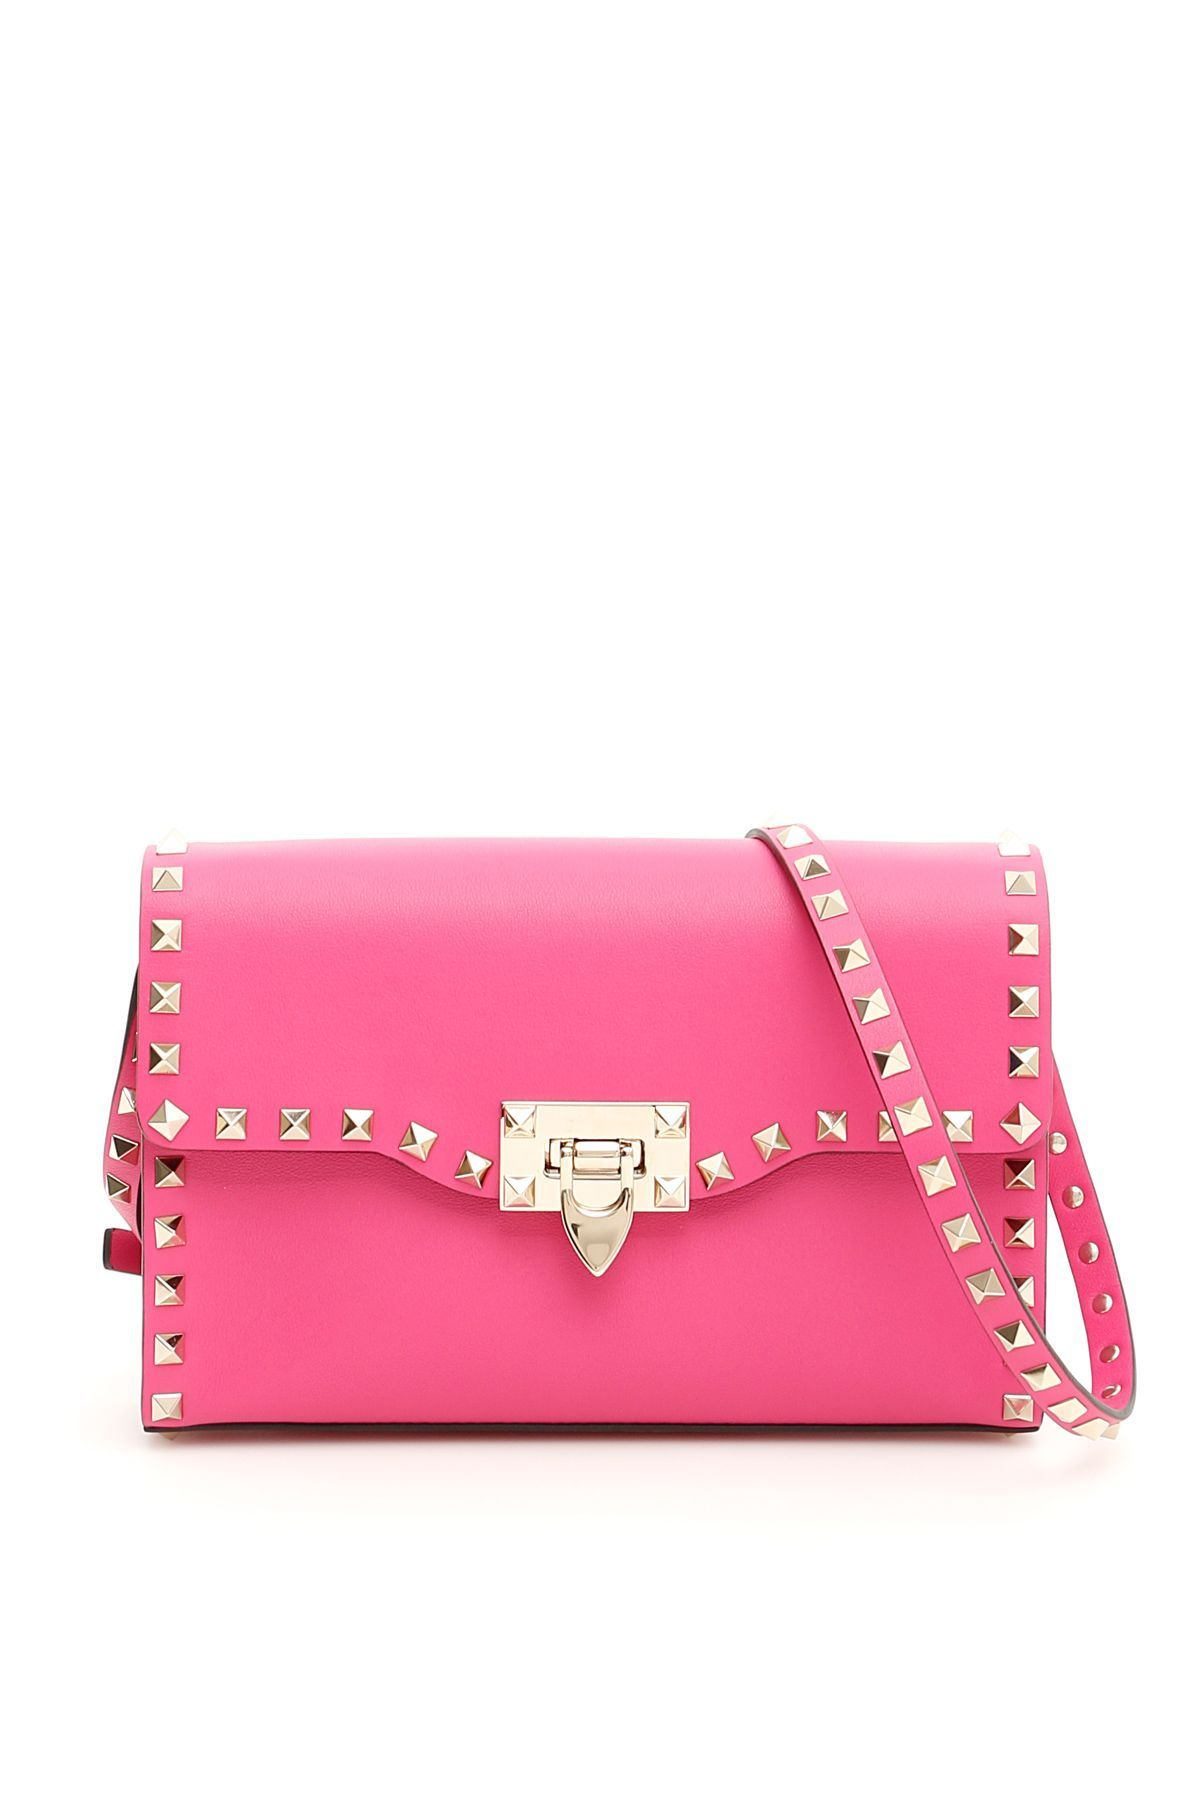 6673724a1 VALENTINO SMALL ROCKSTUD CROSSBODY BAG. #valentino #bags #shoulder bags  #leather #crossbody #lining